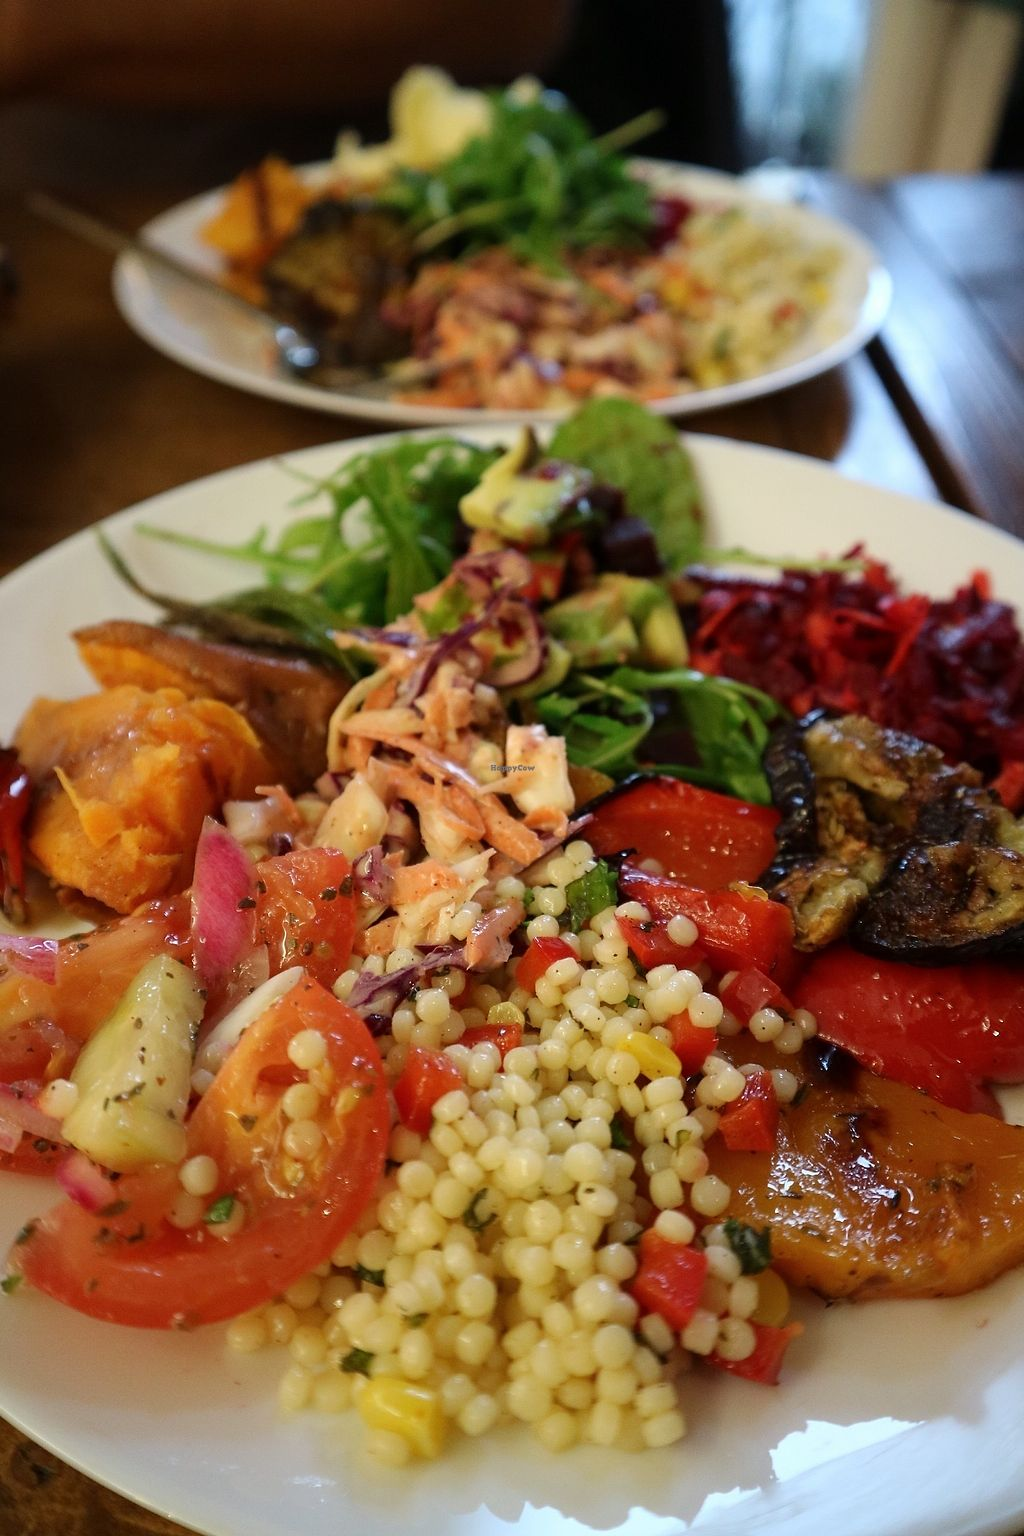 """Photo of Simply Vegan  by <a href=""""/members/profile/charclothier"""">charclothier</a> <br/>amazing help yourself buffet  <br/> November 7, 2017  - <a href='/contact/abuse/image/102624/323052'>Report</a>"""